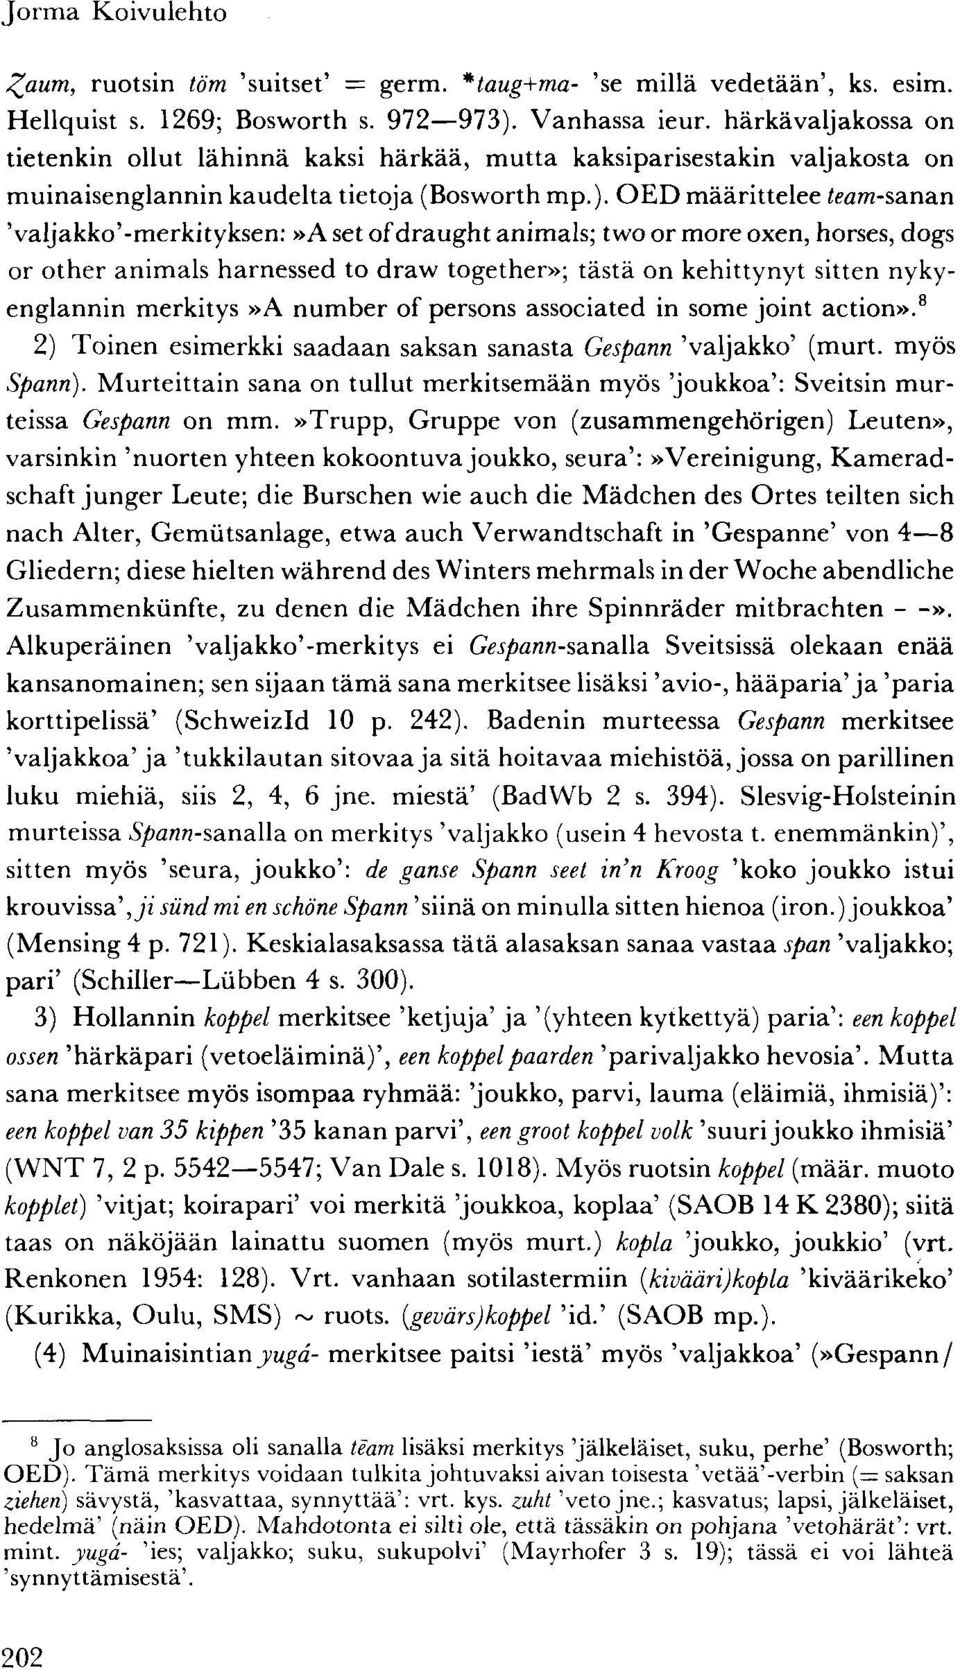 OED määrittelee team-sanan 'valjakko'-merkityksen:»a set of draught animals; two or more oxen, horses, dogs or other animals harnessed to dravv together»; tästä on kehittynyt sitten nykyenglannin